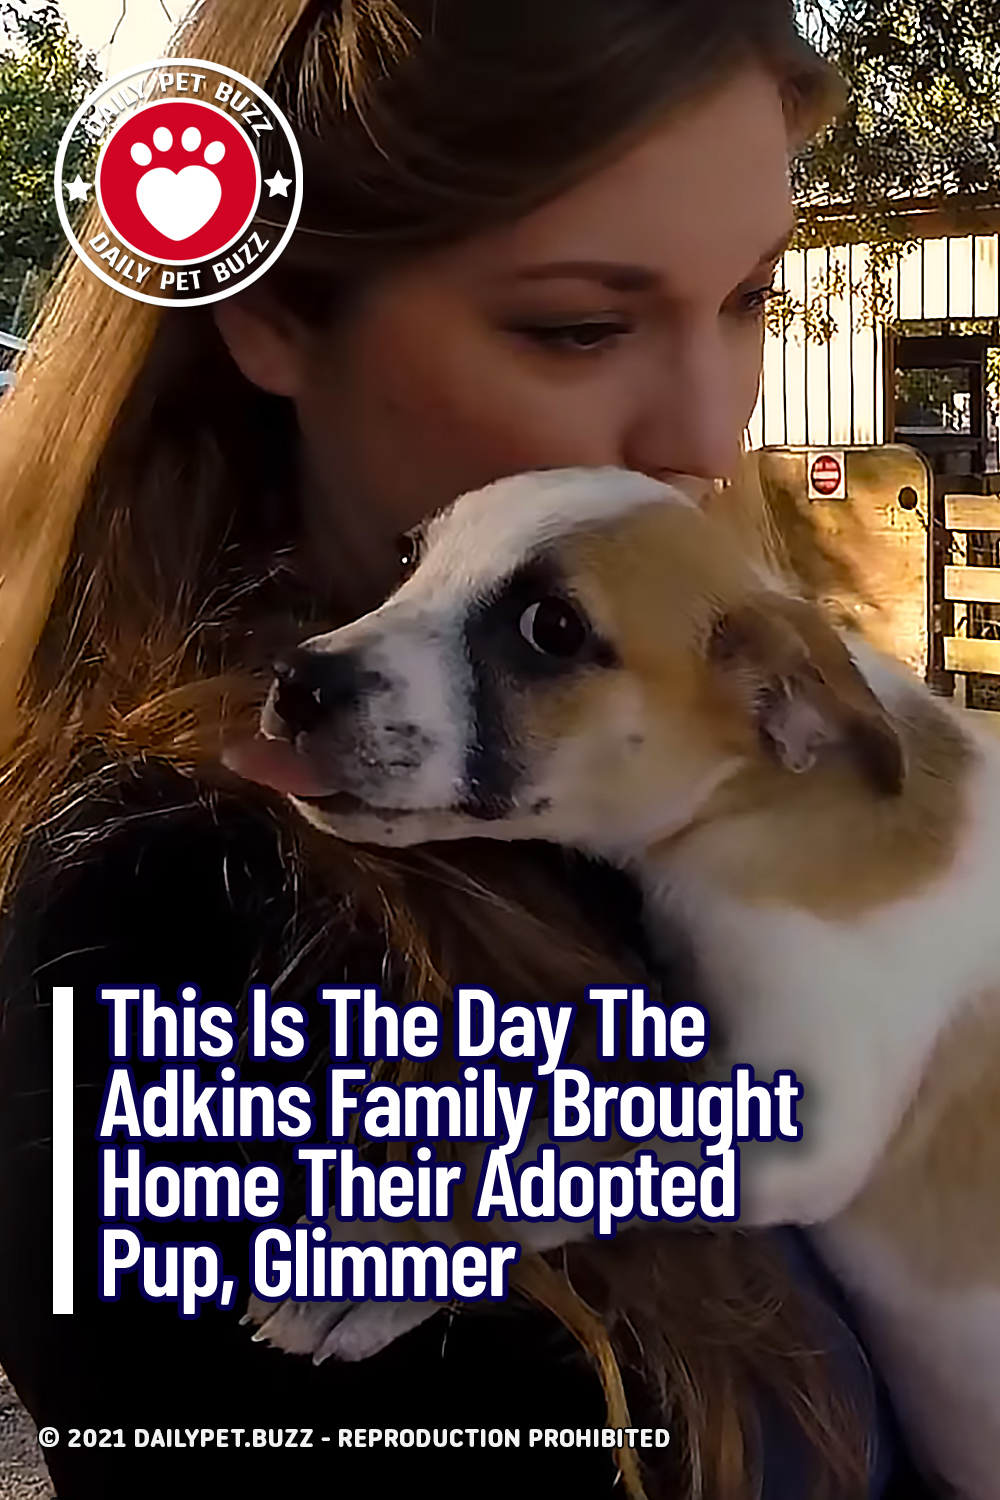 This Is The Day The Adkins Family Brought Home Their Adopted Pup, Glimmer